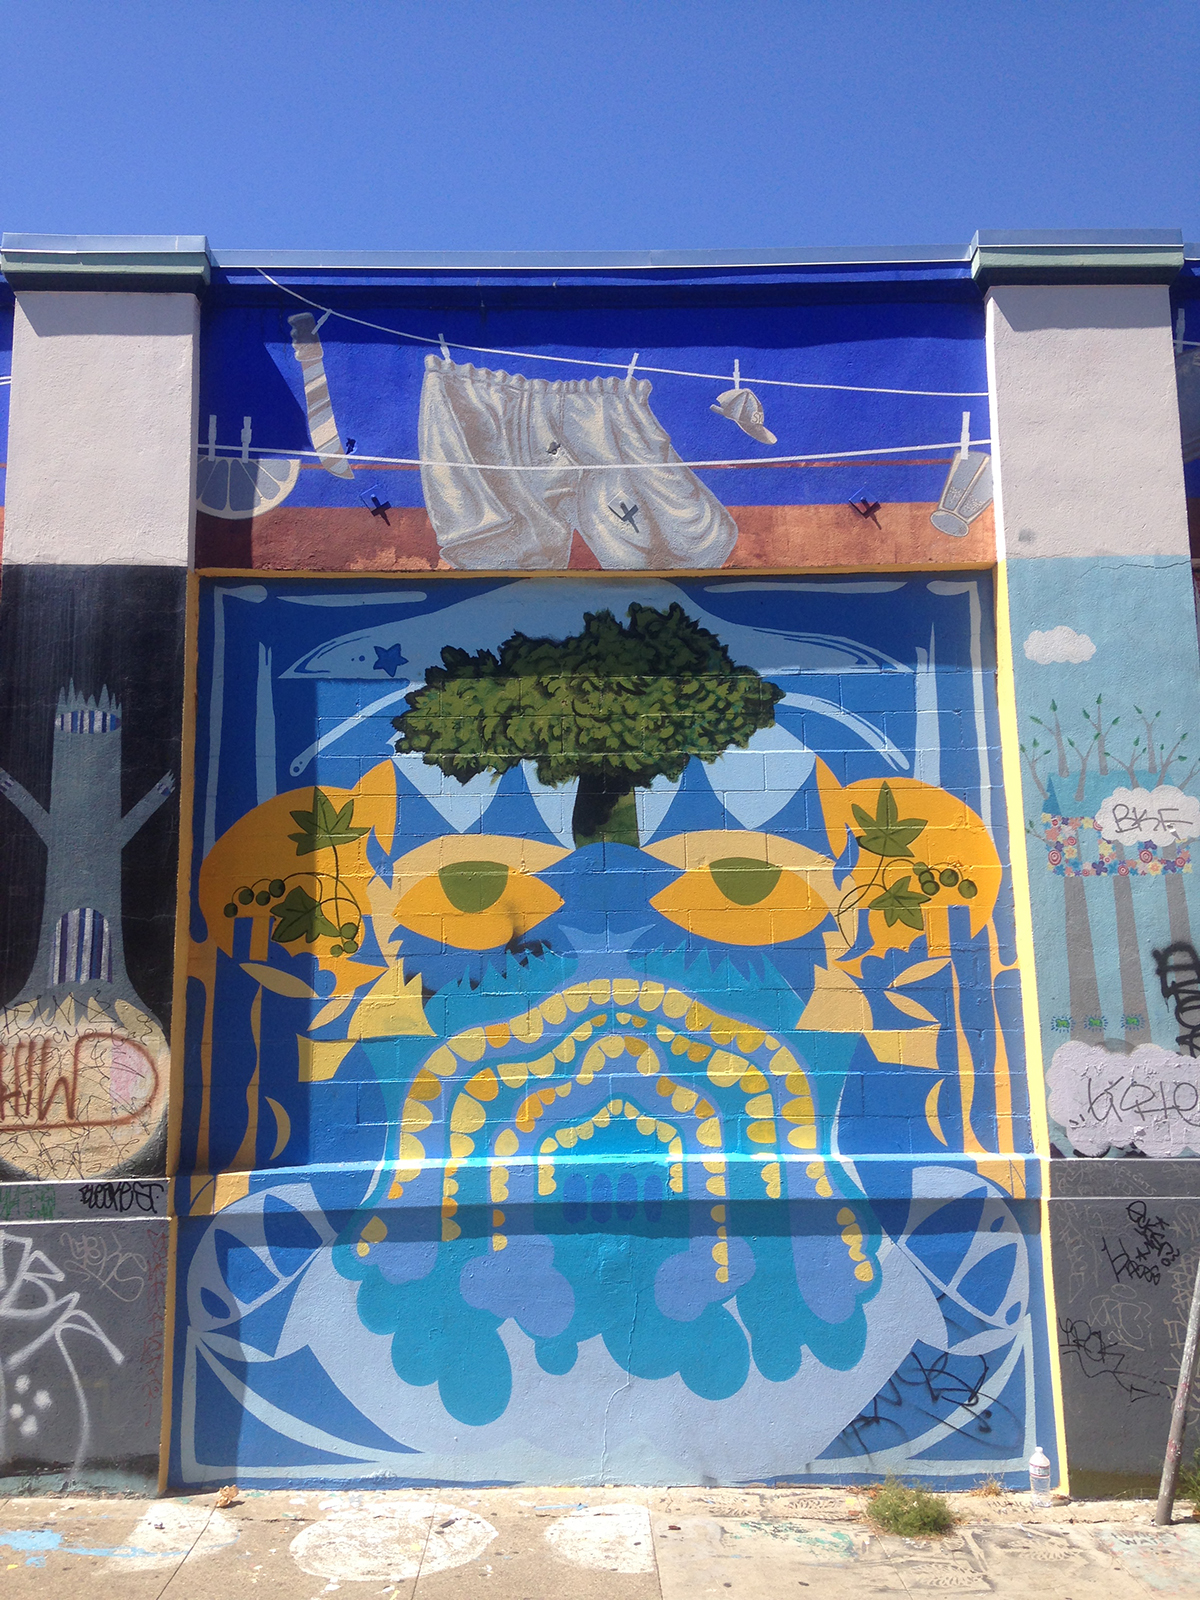 Mural on Sycamore Alley, Mission District, SF, CA